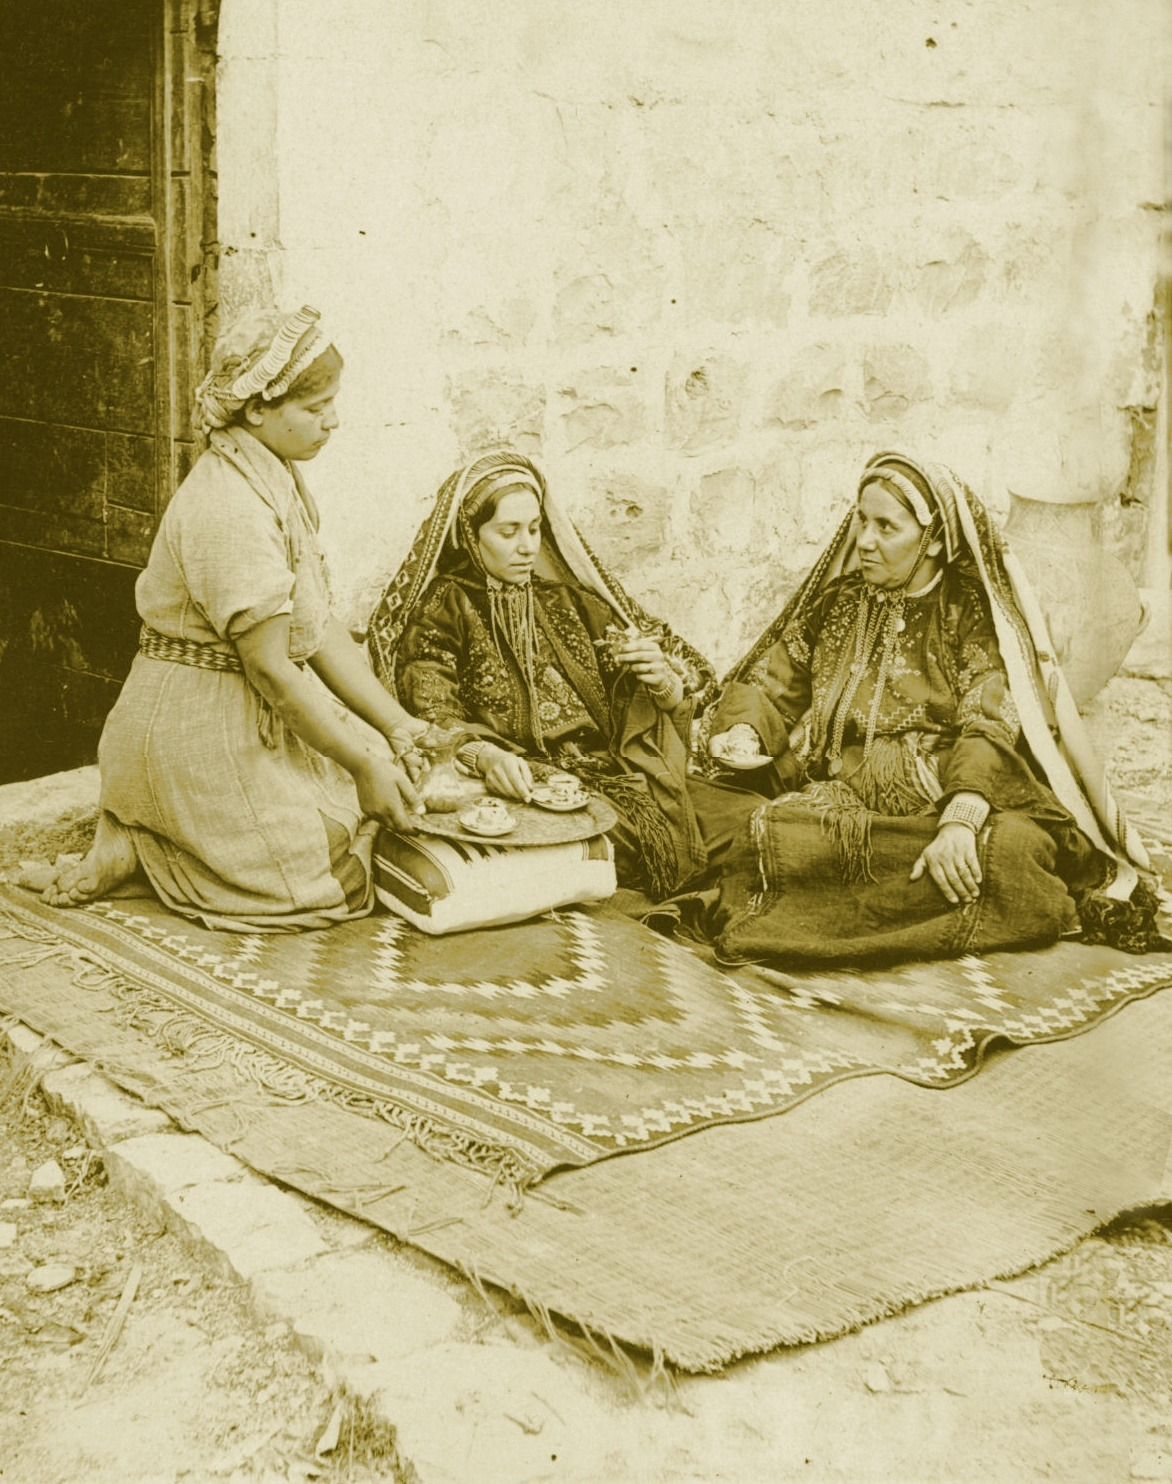 Serving coffee, Ramallah, circa 1890s